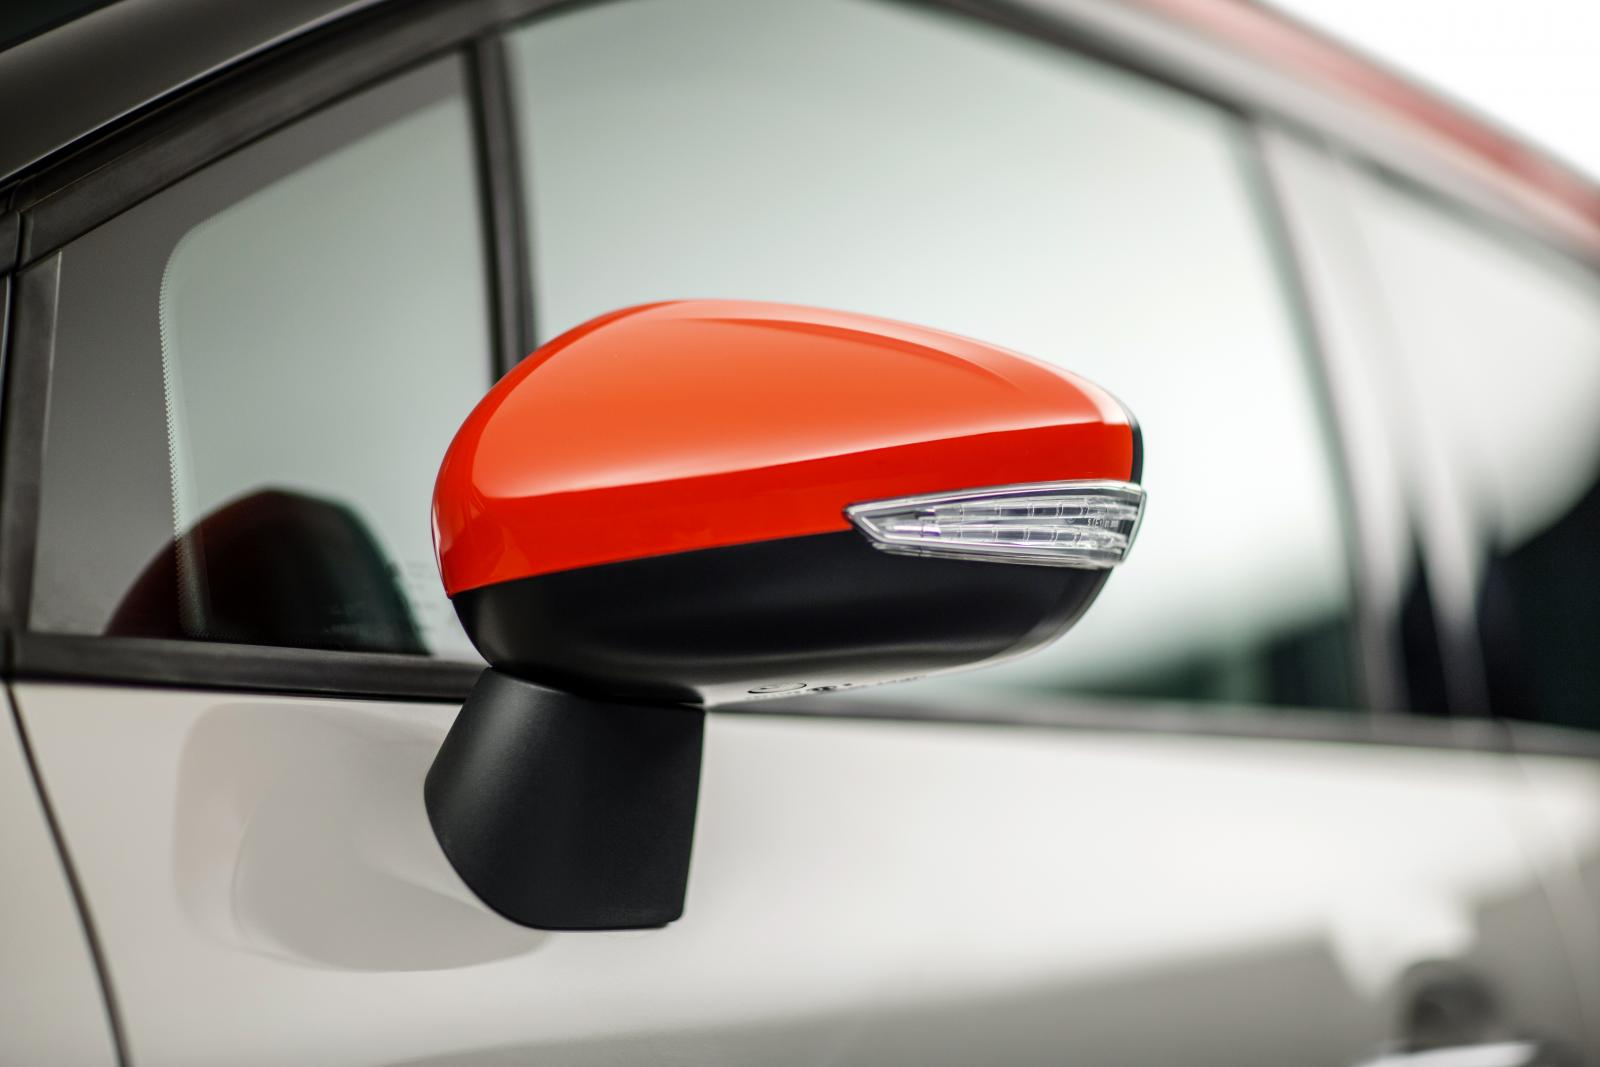 C3 Aircross Compact SUV - Wing mirror